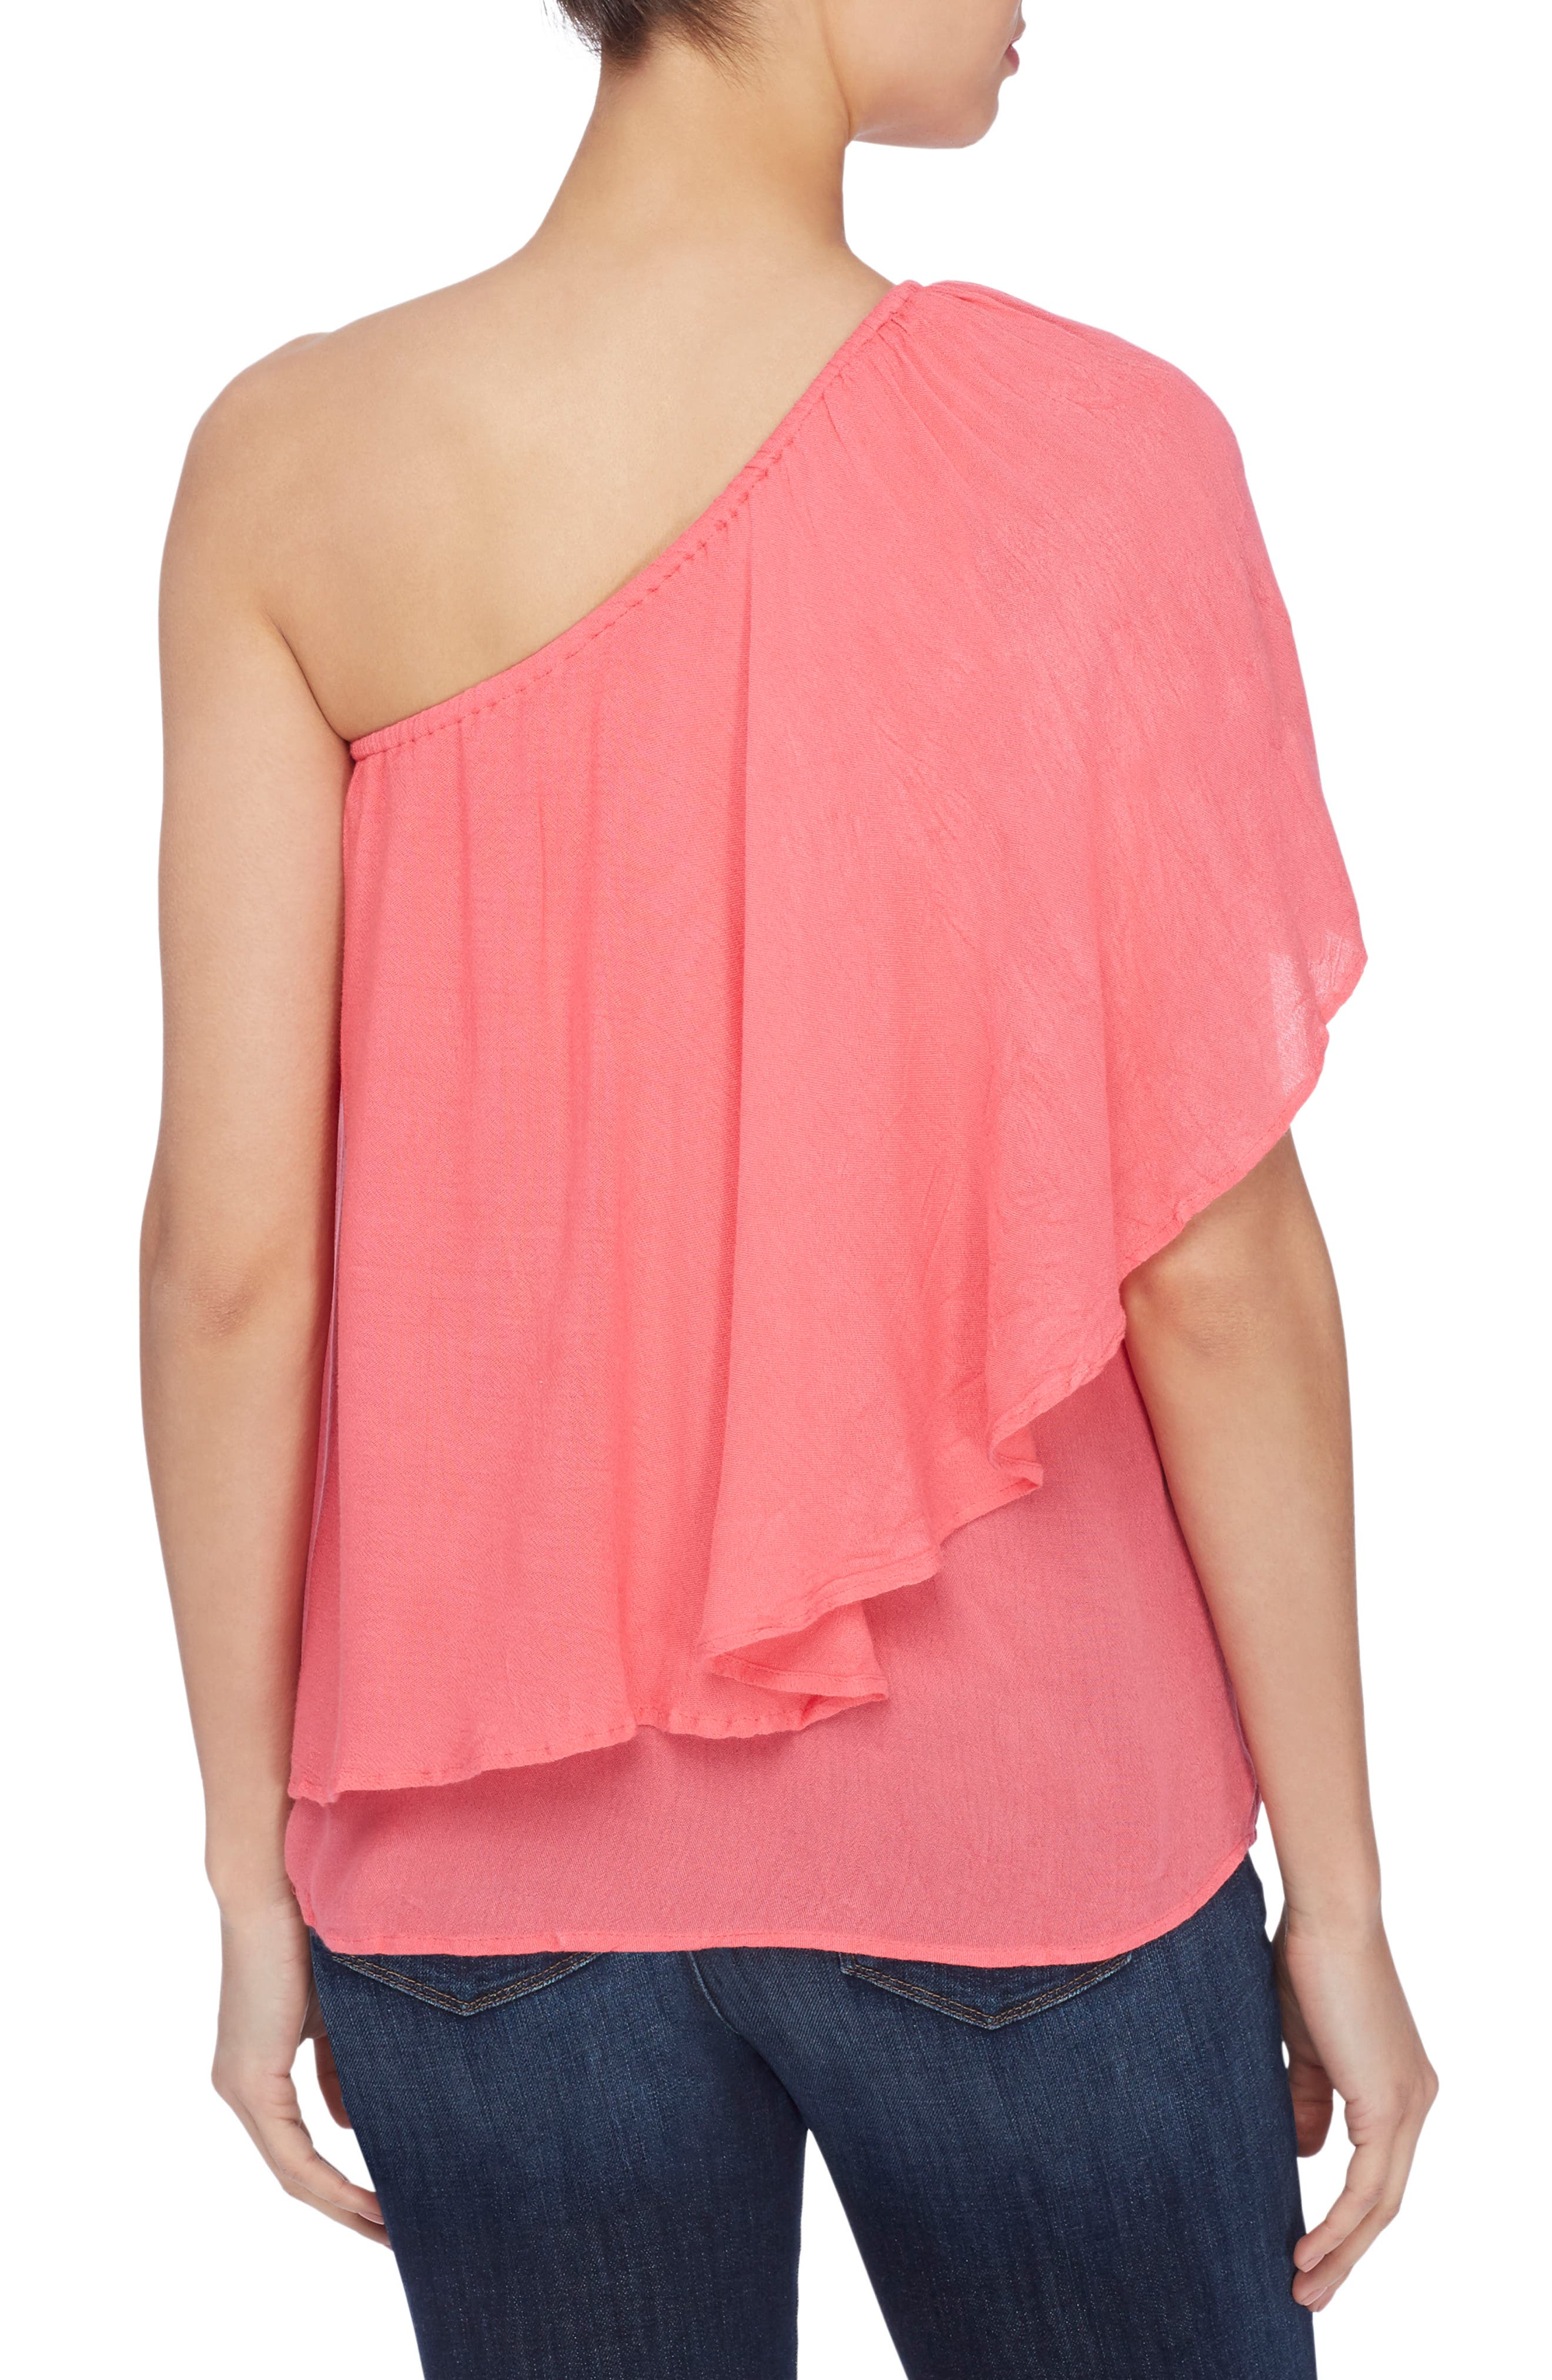 Magritte One-Shoulder Top,                             Alternate thumbnail 2, color,                             Azalea Pink